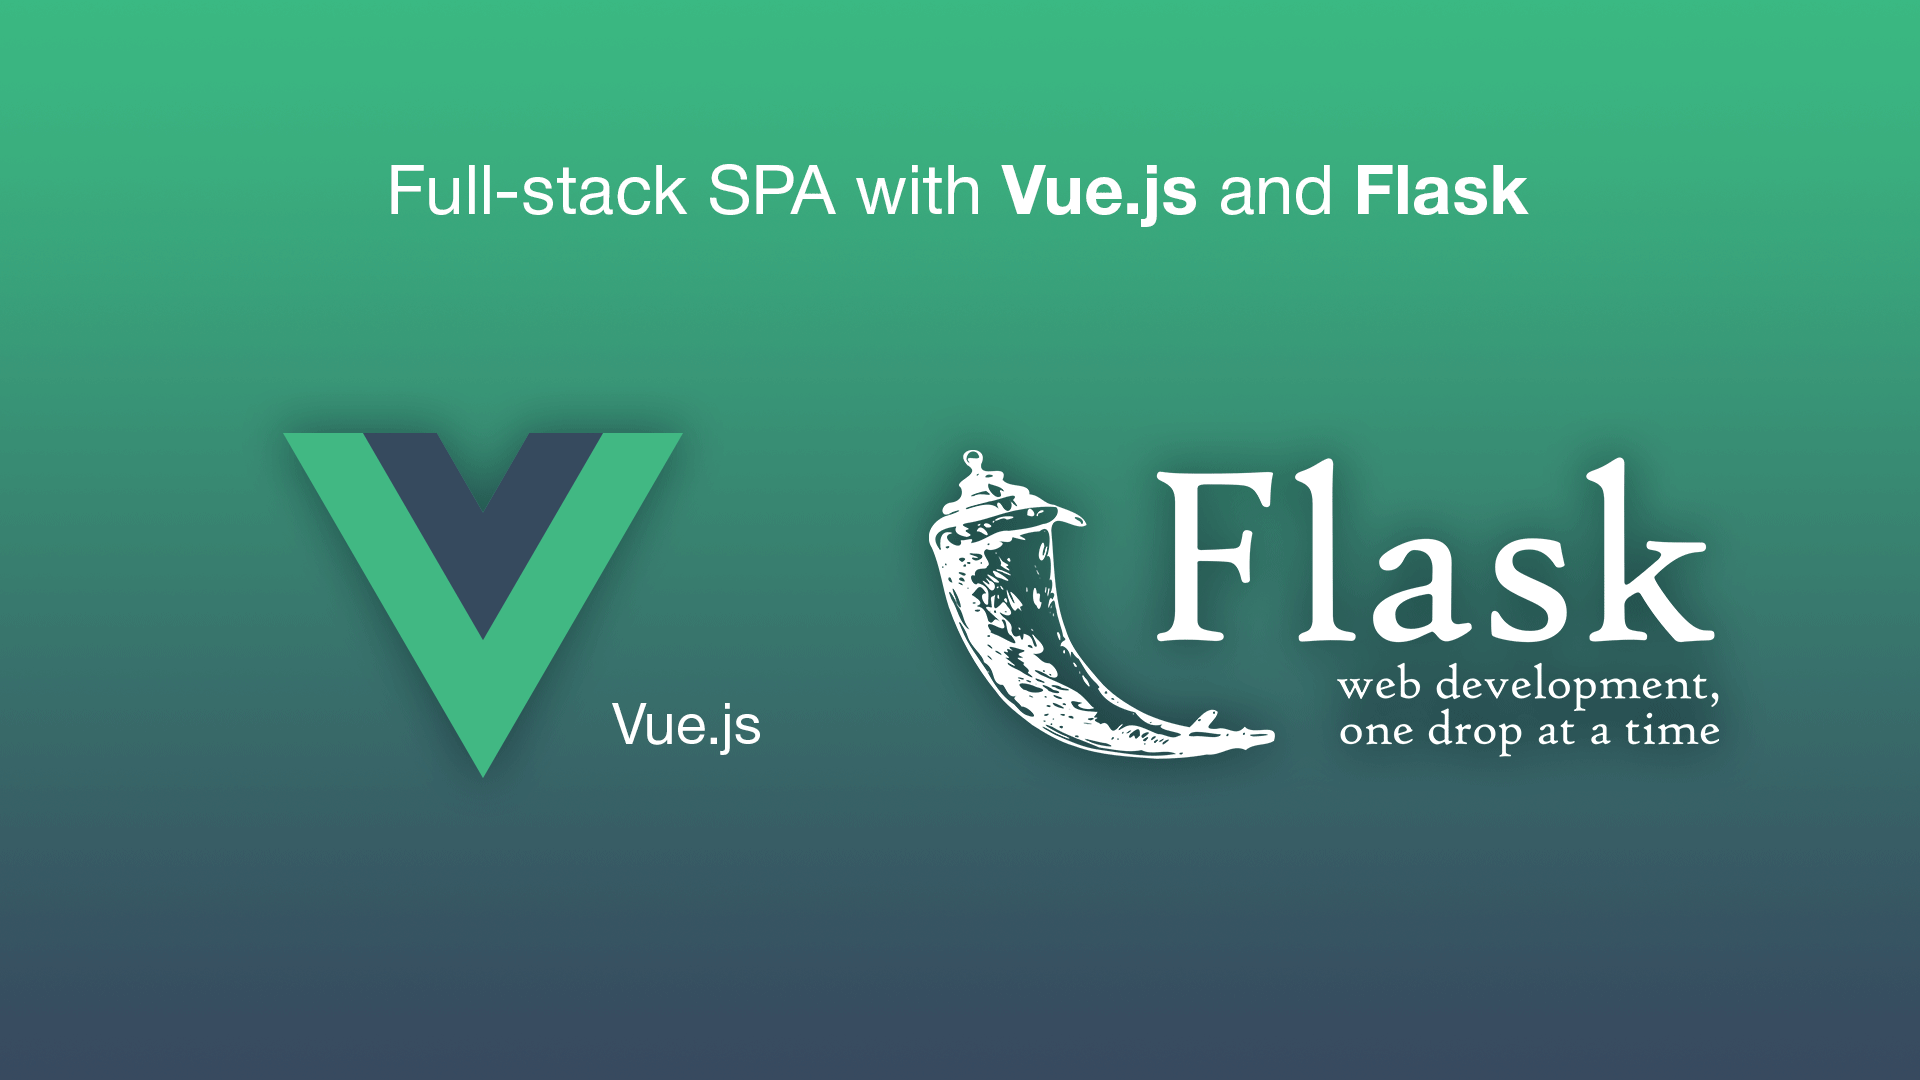 Full-stack single page application with Vue js and Flask